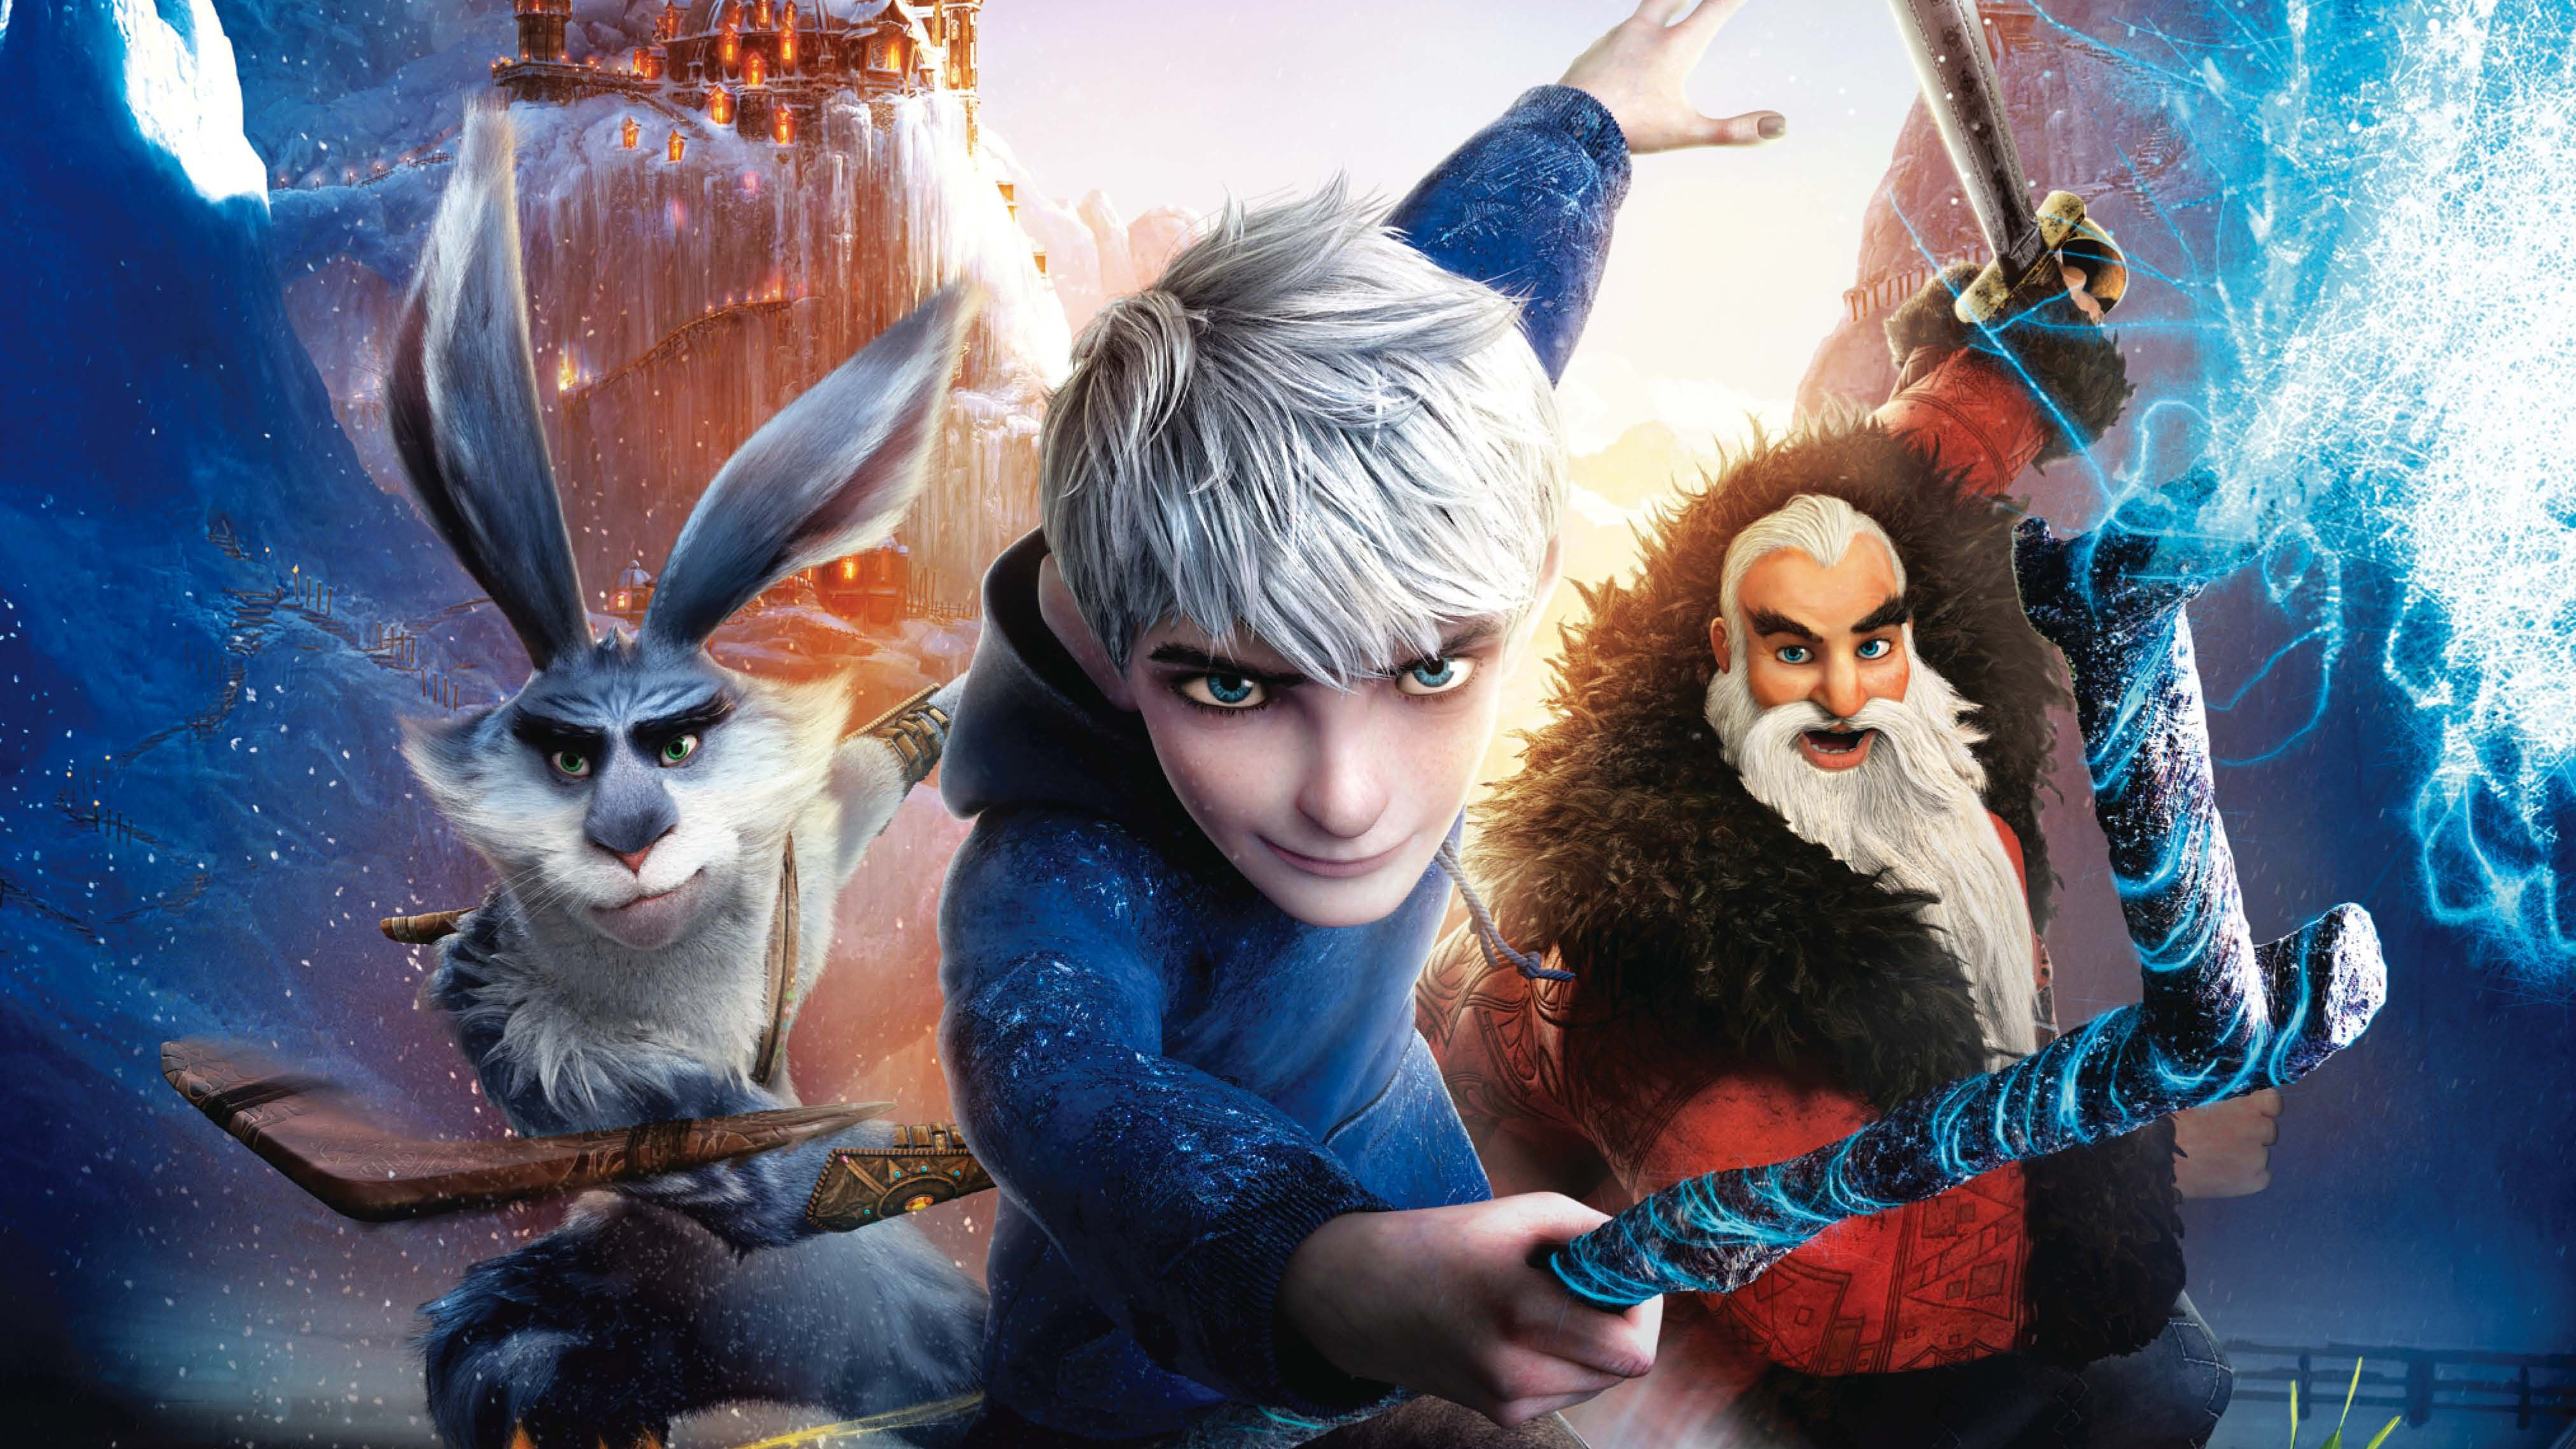 rise of the guardians 4k 1543105175 - Rise Of The Guardians 4k - movies wallpapers, hd-wallpapers, animated movies wallpapers, 4k-wallpapers